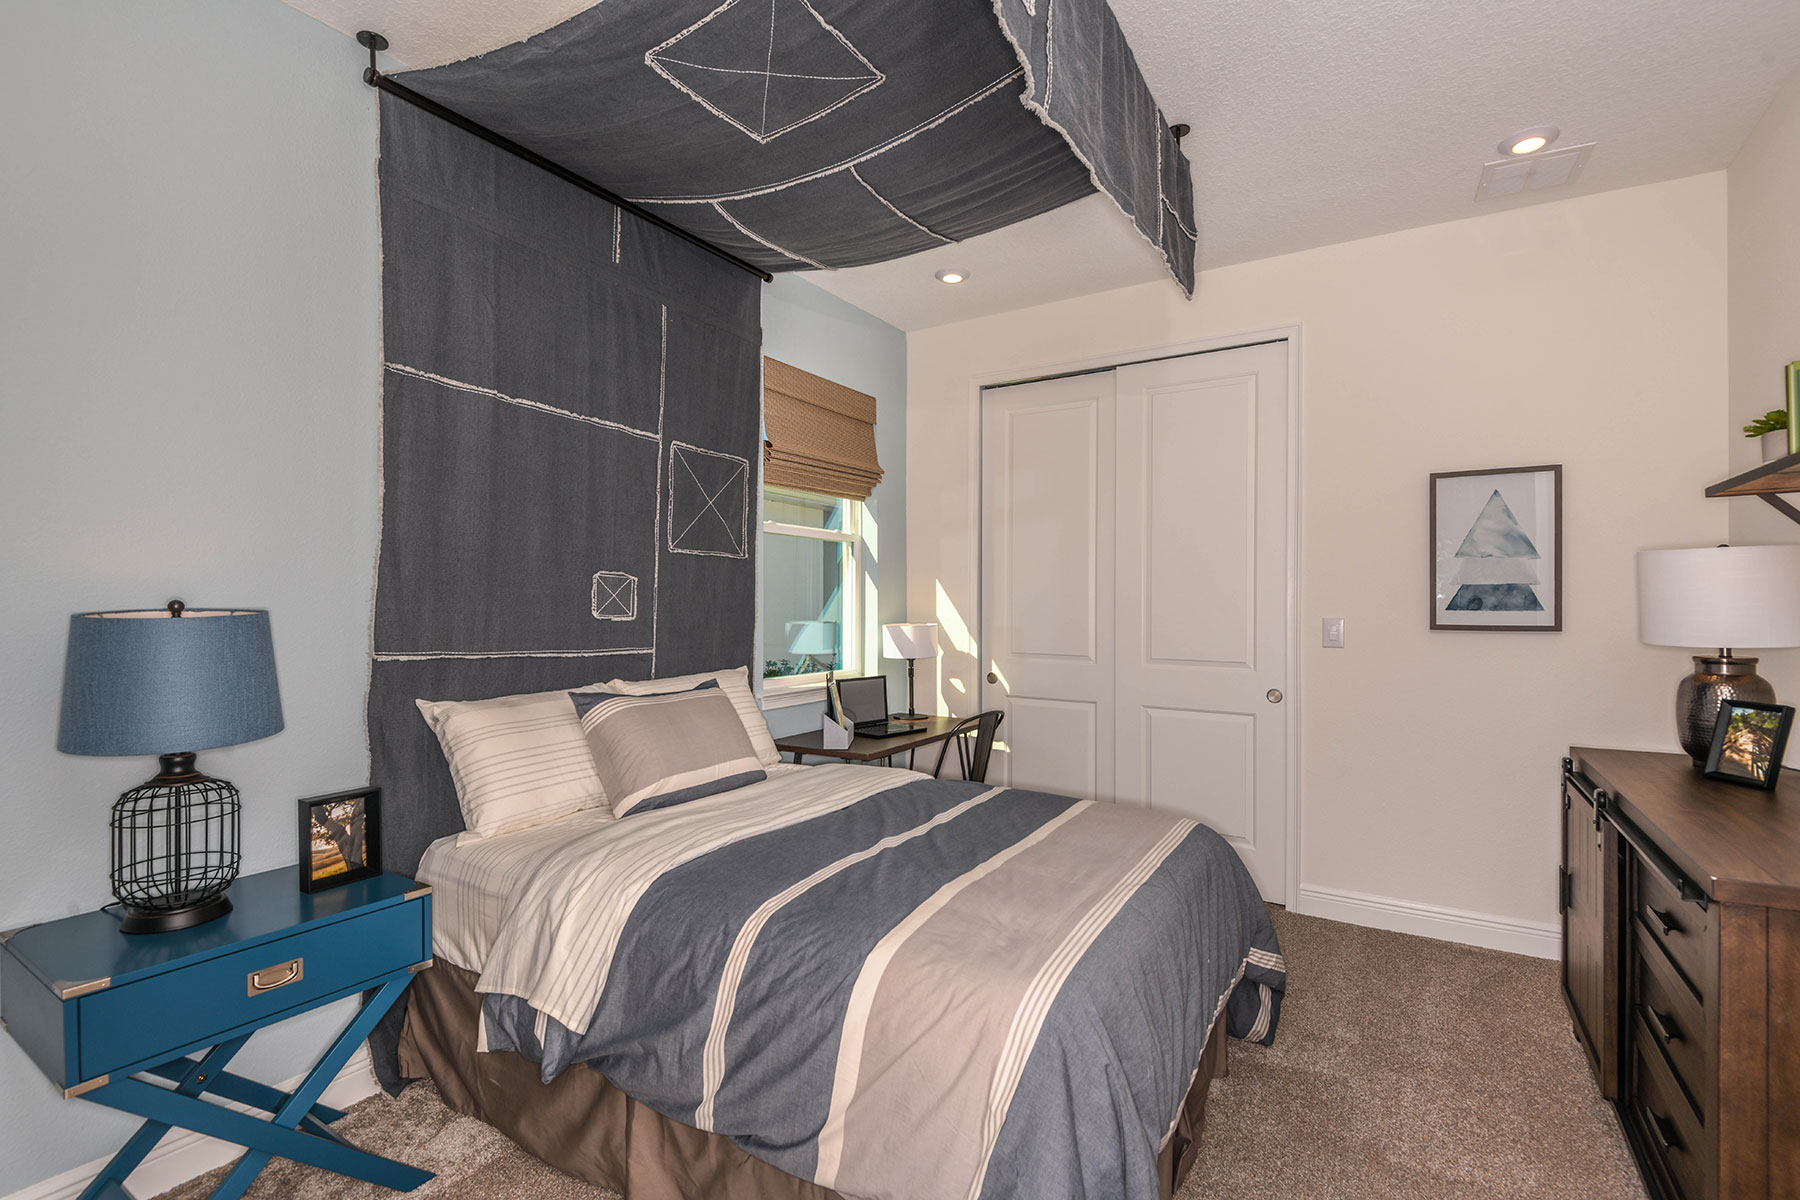 Elm Plan Bedroom at Parkview at Long Lake Ranch in Lutz Florida by Mattamy Homes